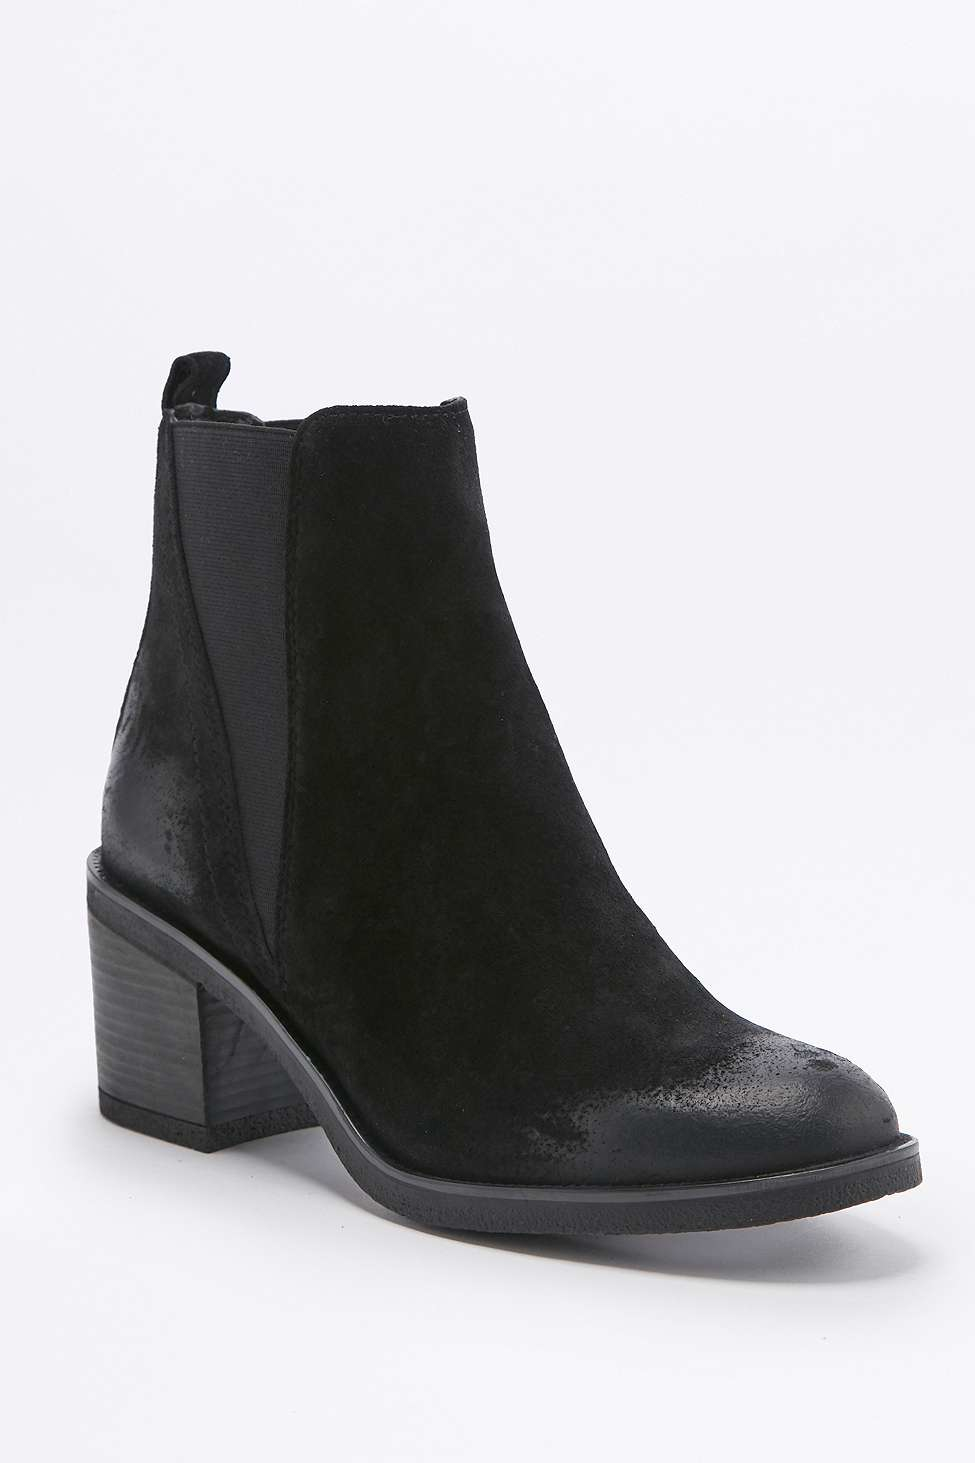 Nisolo Chelsea Boot in Black with Black Heel - Womens Size 8 - Used See more like this Winter Women Chelsea Chunky Shoes Ankle Boots Platform Block High Heels Zipper New (Other).